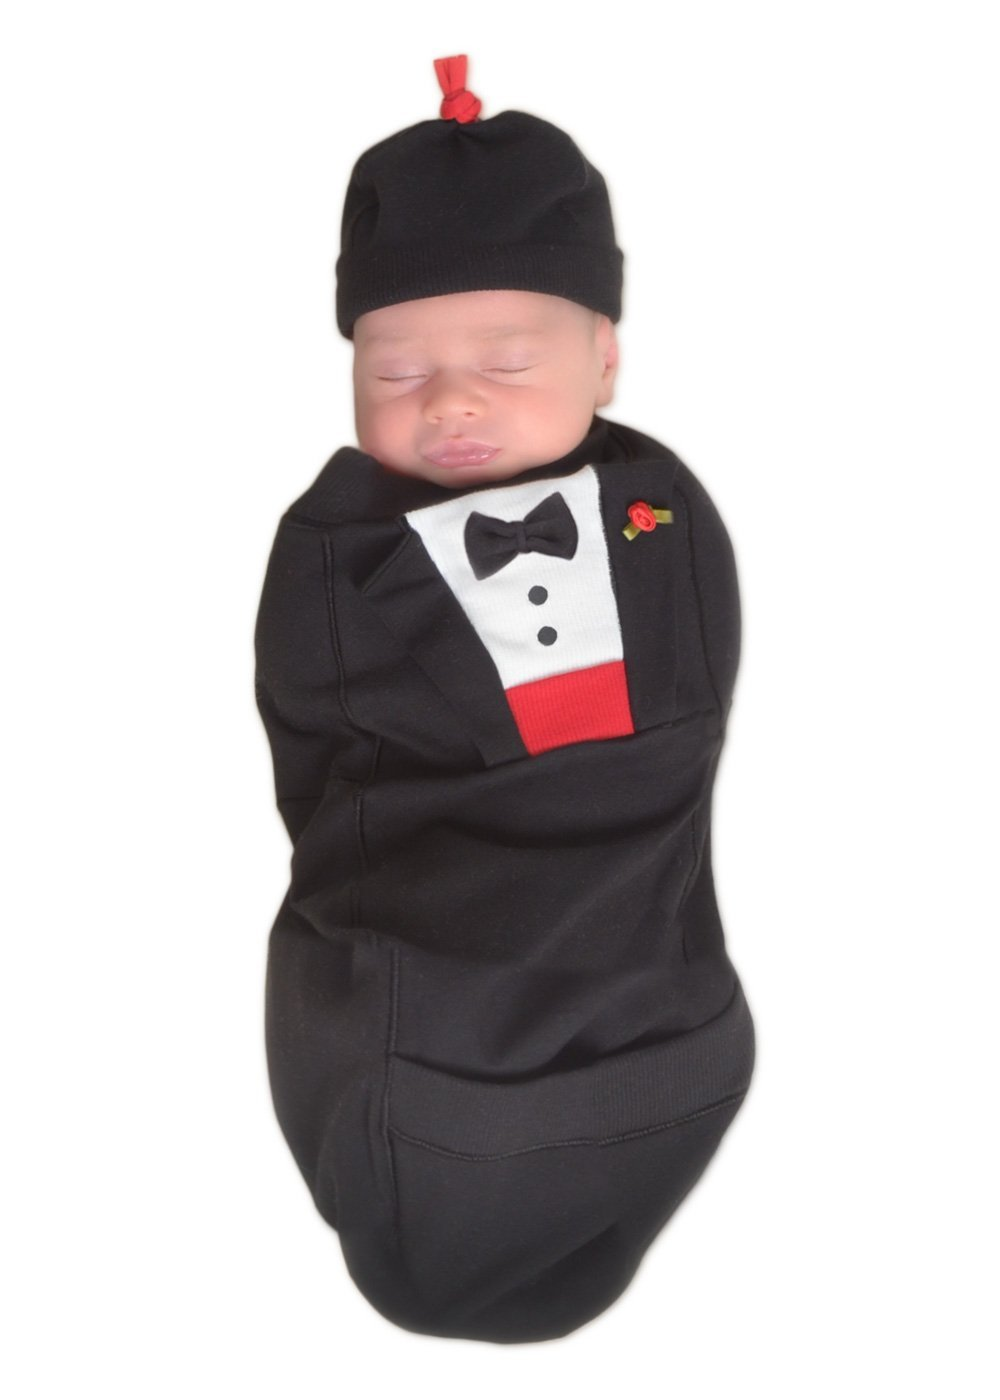 Cozy Cocoon ''Super Easy Swaddling'' Outfit with Matching Hat - Tuxedo, 0-3 Months